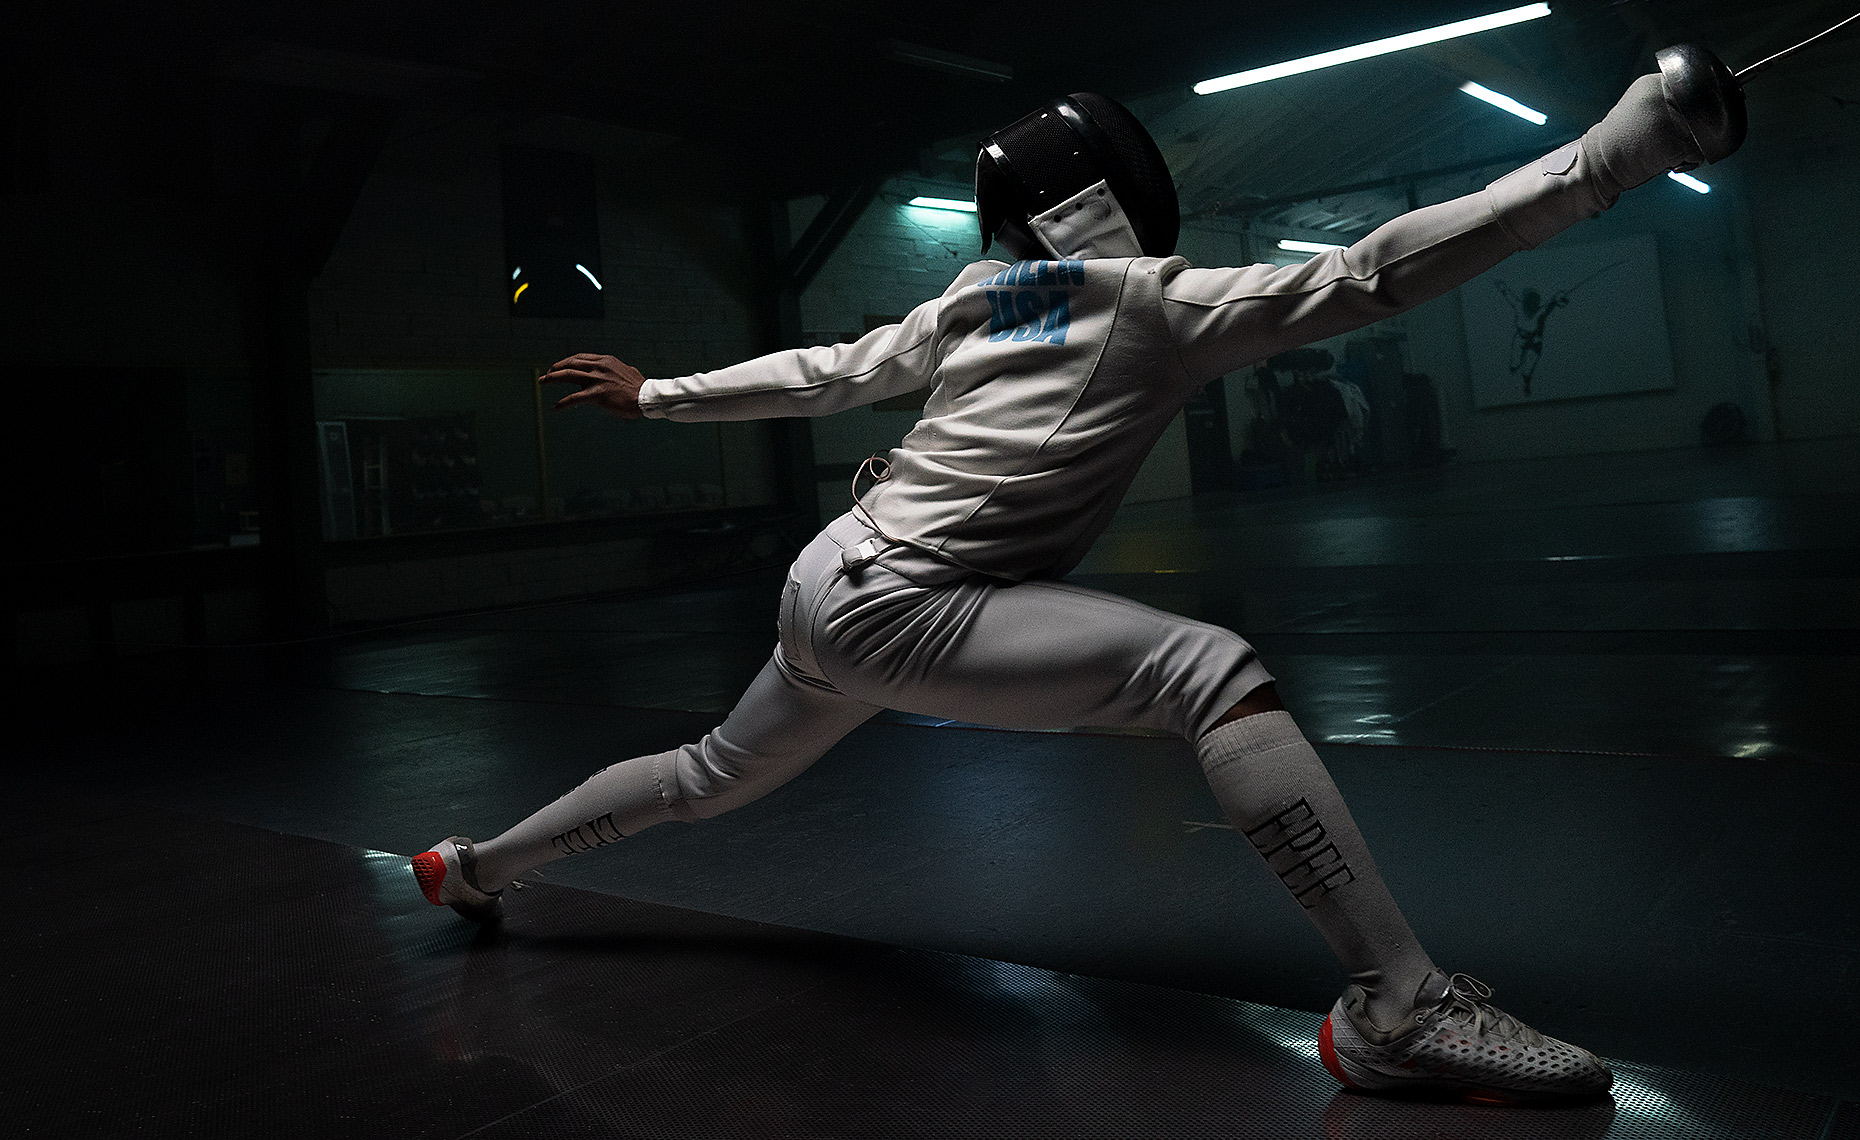 _001_JJLSE_190308_DX_Fencing_DX_2552